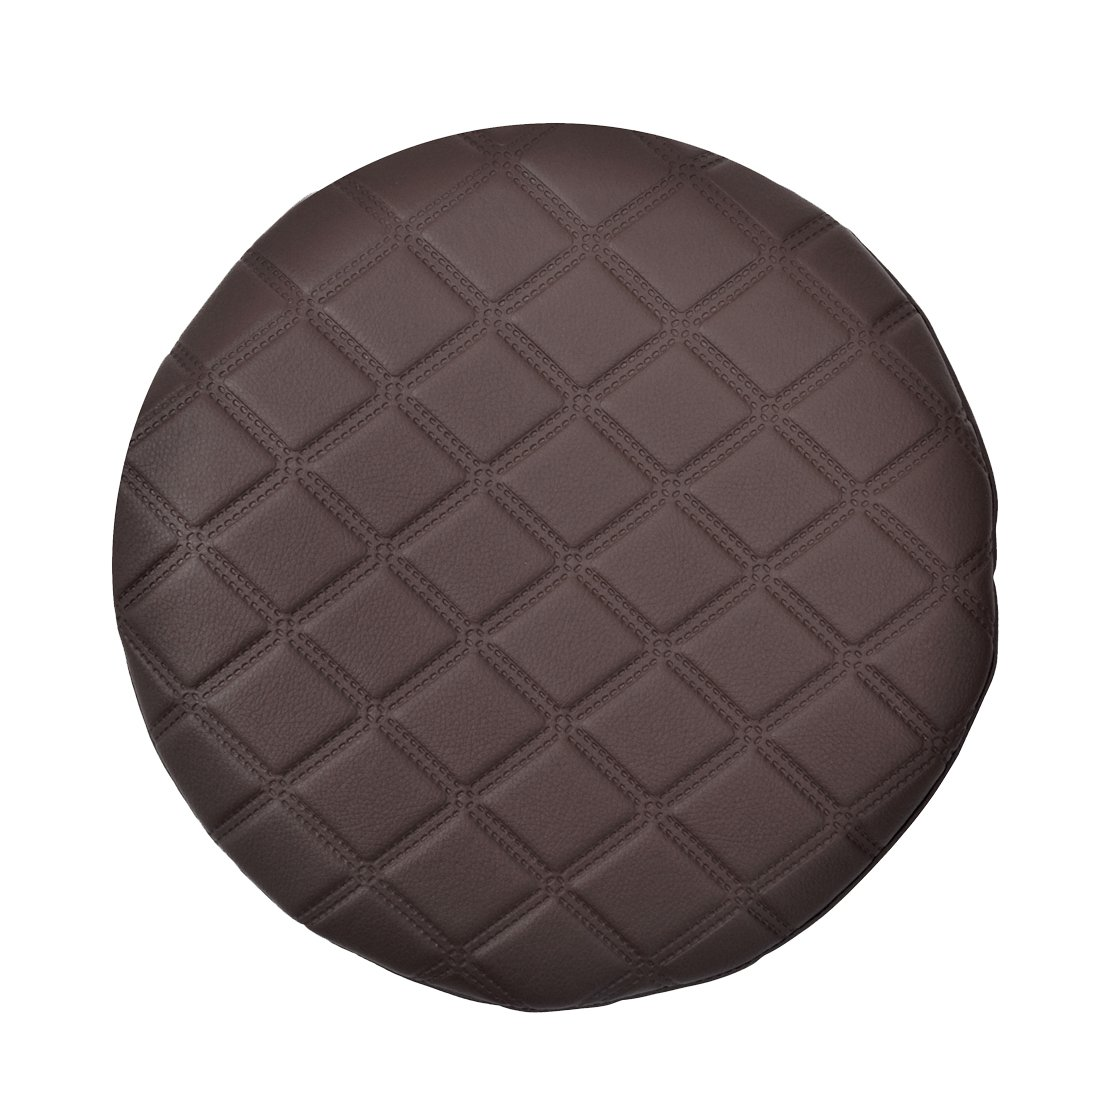 Jiyaru Round Stool Cover Faux Leather Bar Chair Seat Thicken Slipcpver Coffee 12.99 Inch